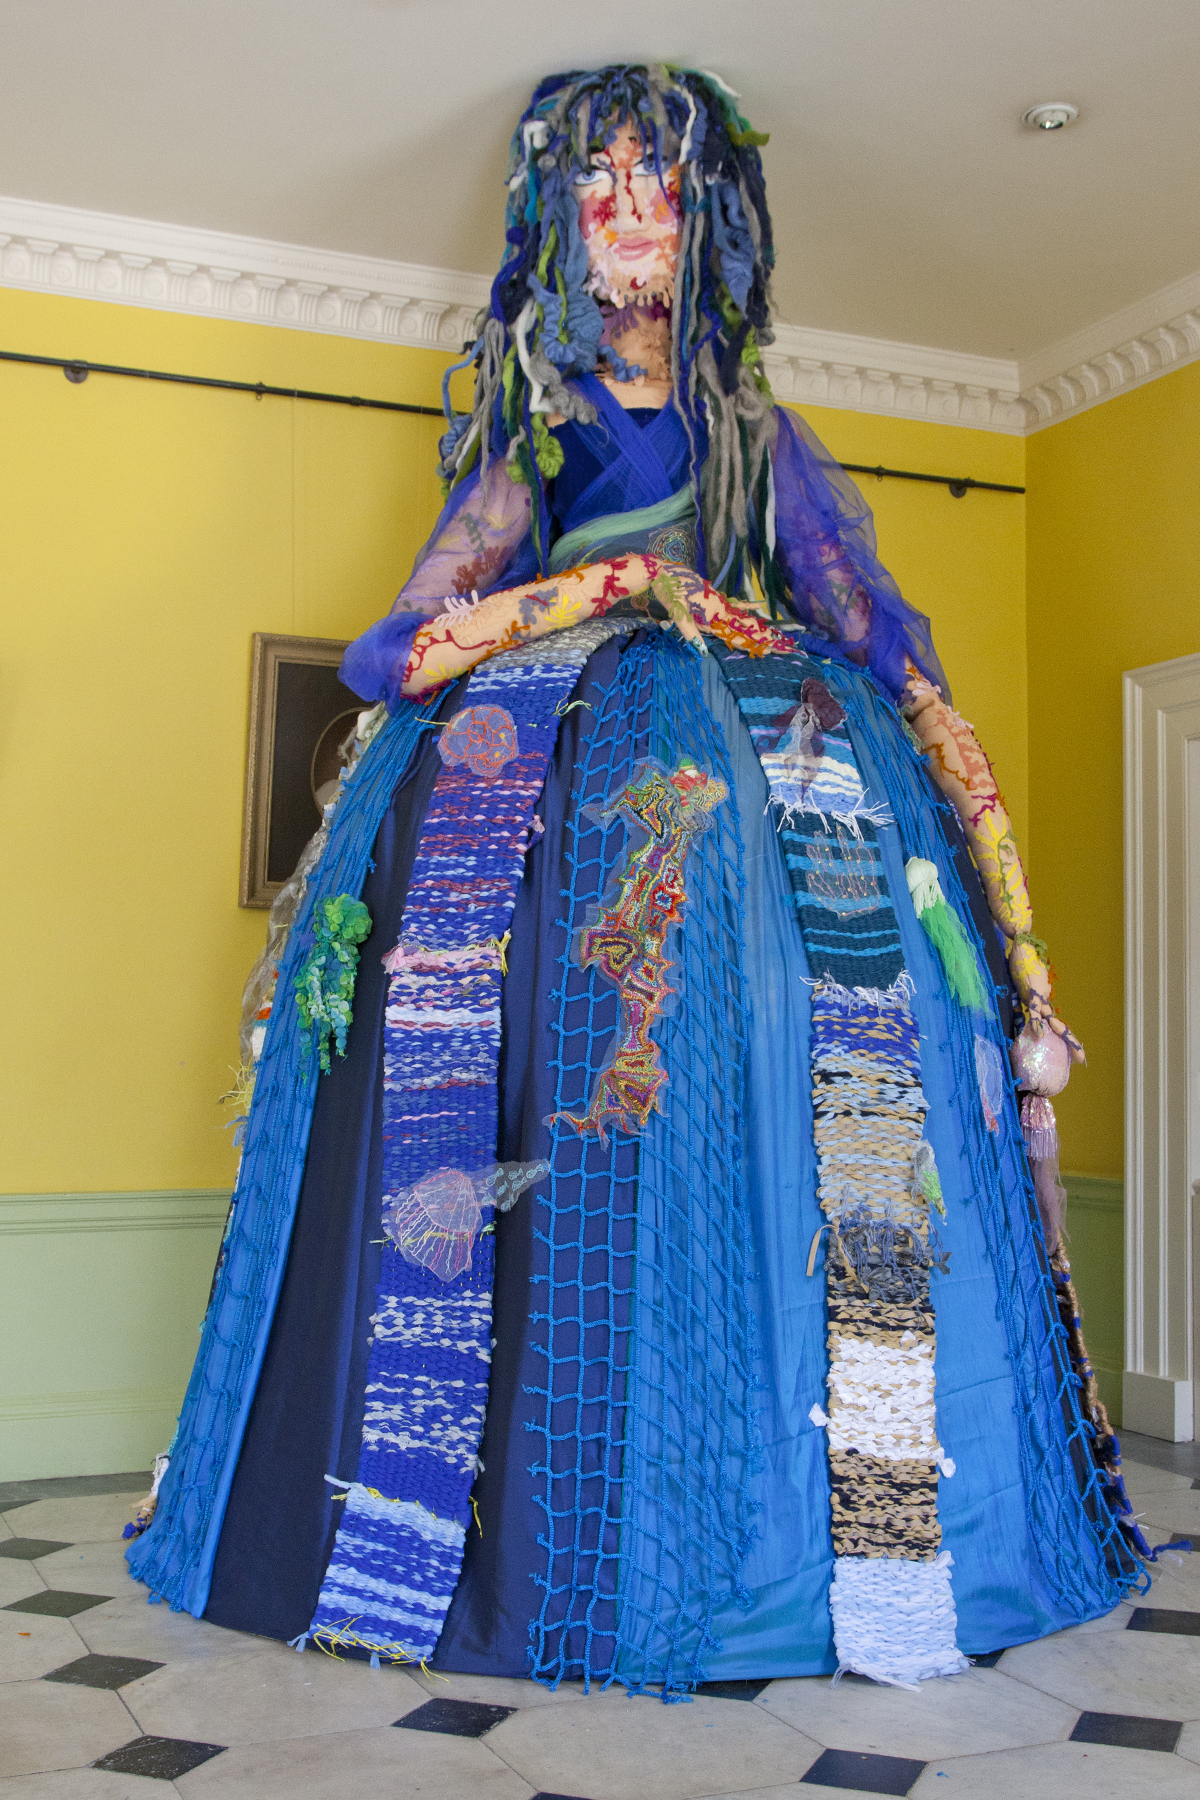 The 12-foot-high sea witch that now stands in the foyer of Kingshill House, Dursley (9972306)